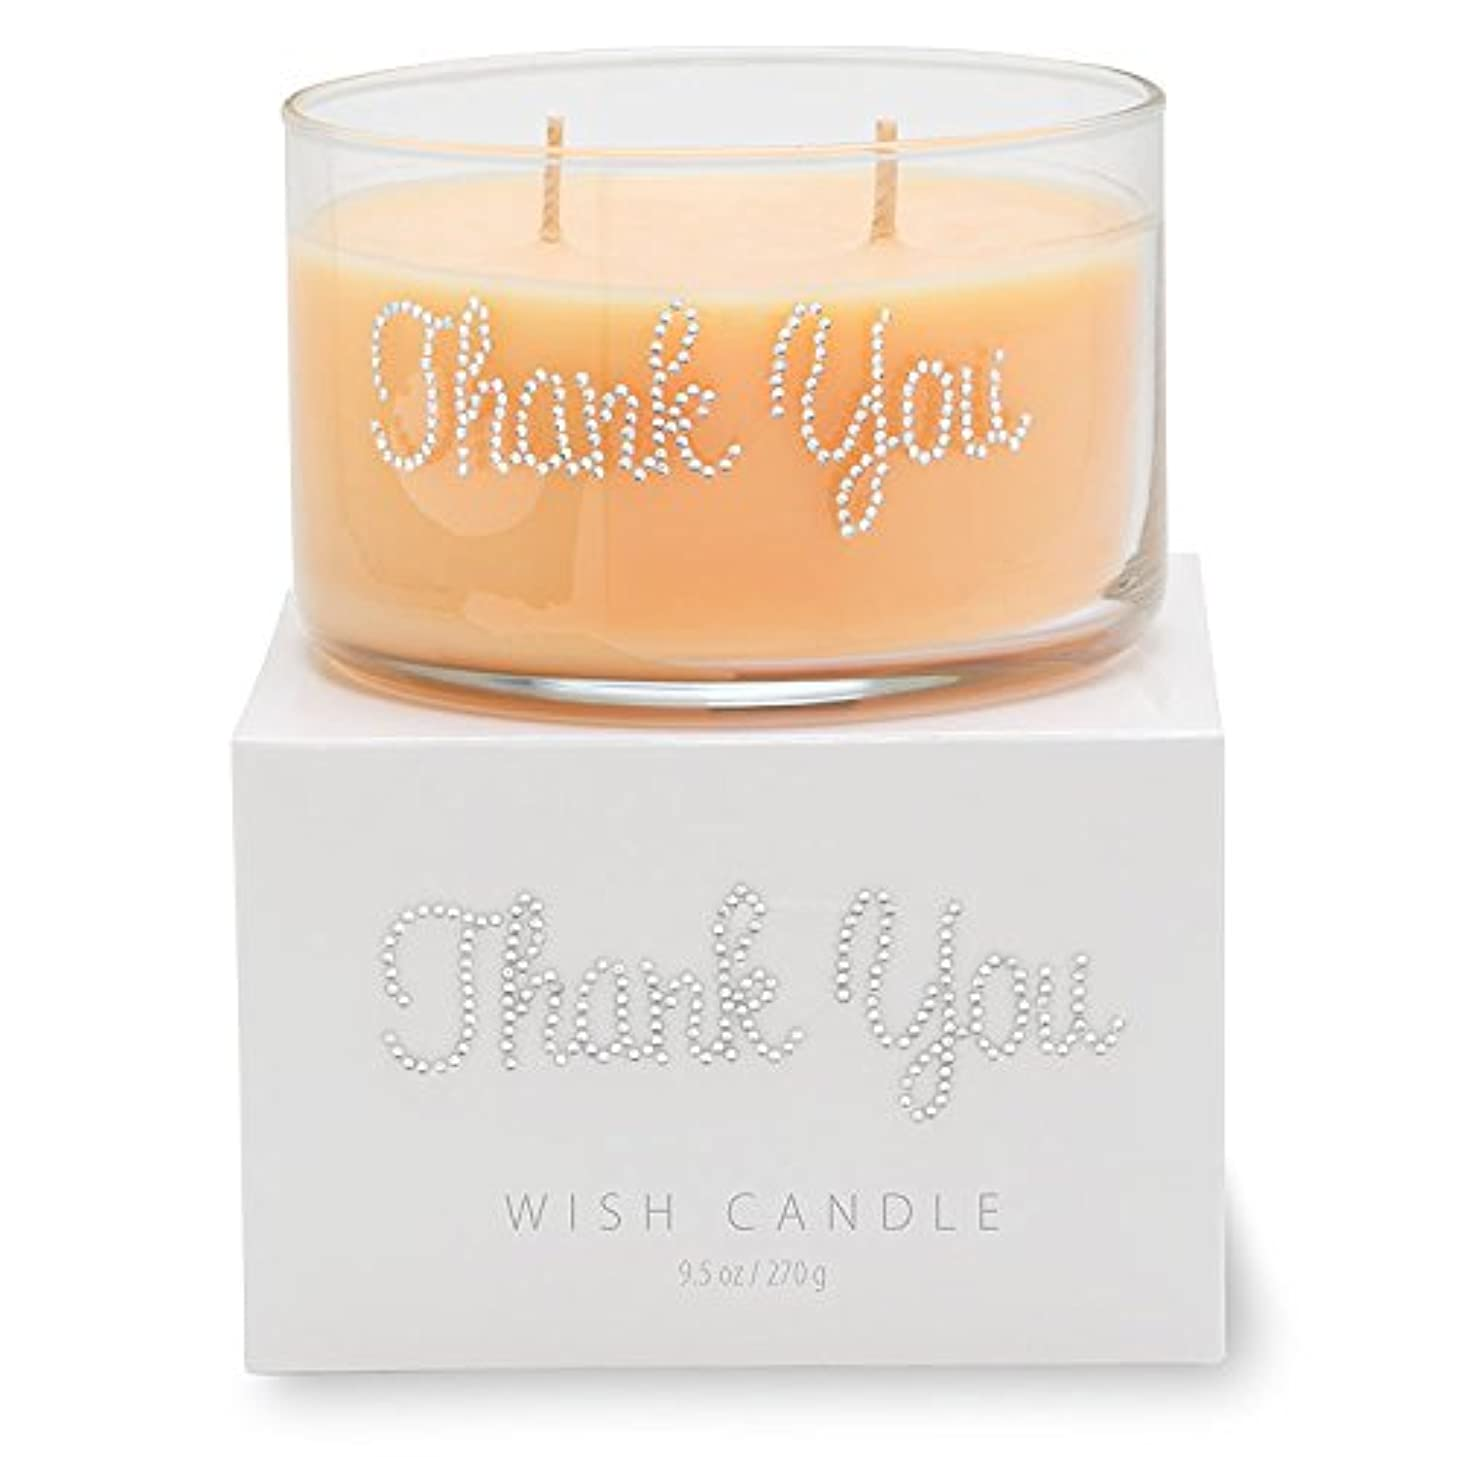 Primal Elements Thank You Wish Candle, 11-Ounce mslqysnxh